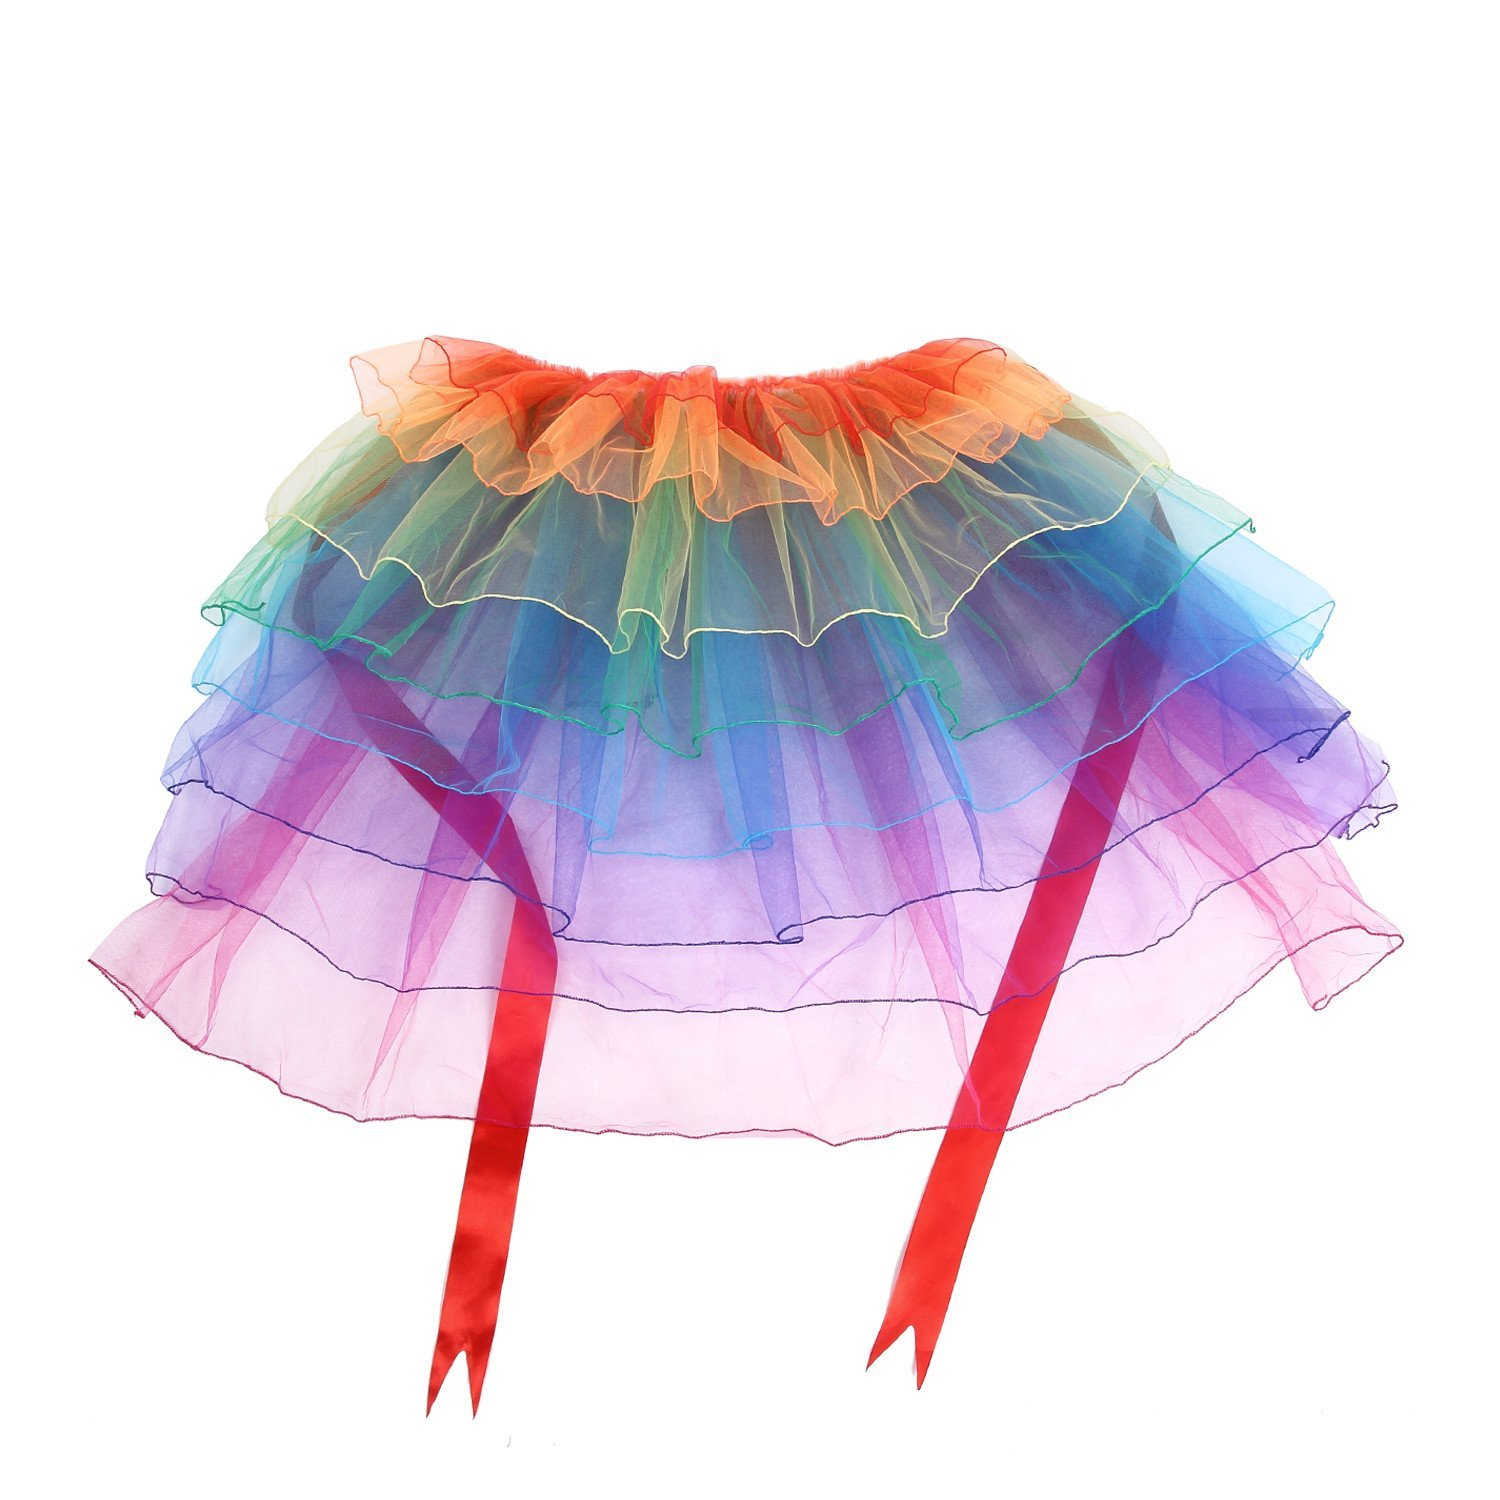 704640b0e US $13.99 |Lady's Rainbow Tutu Bustle Dancing Long Tail Skirt girls'  Layered Bubble dress Organza with Unicorn Headwear-in Anime Costumes from  Novelty ...